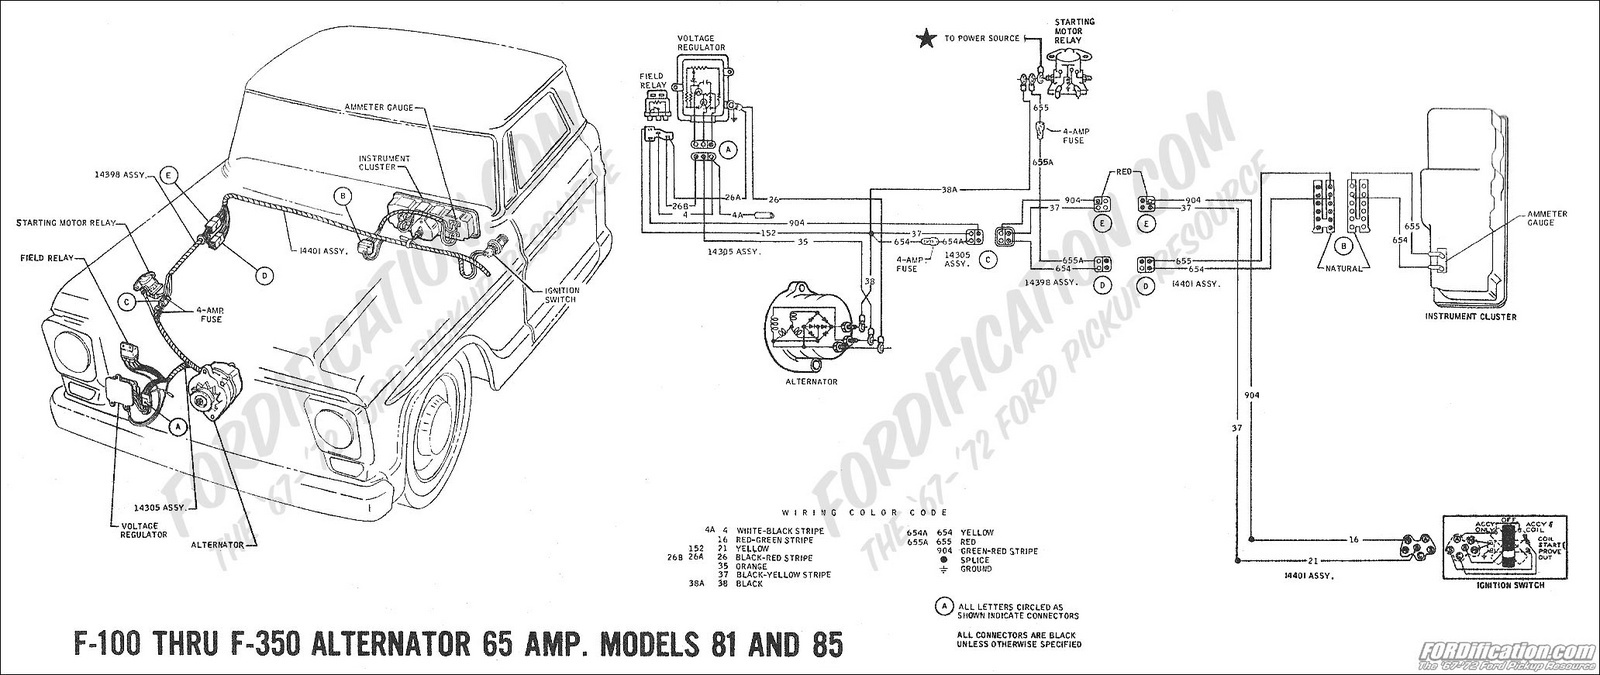 Discussion C13911 ds652668 on chevy 3 wire alternator diagram